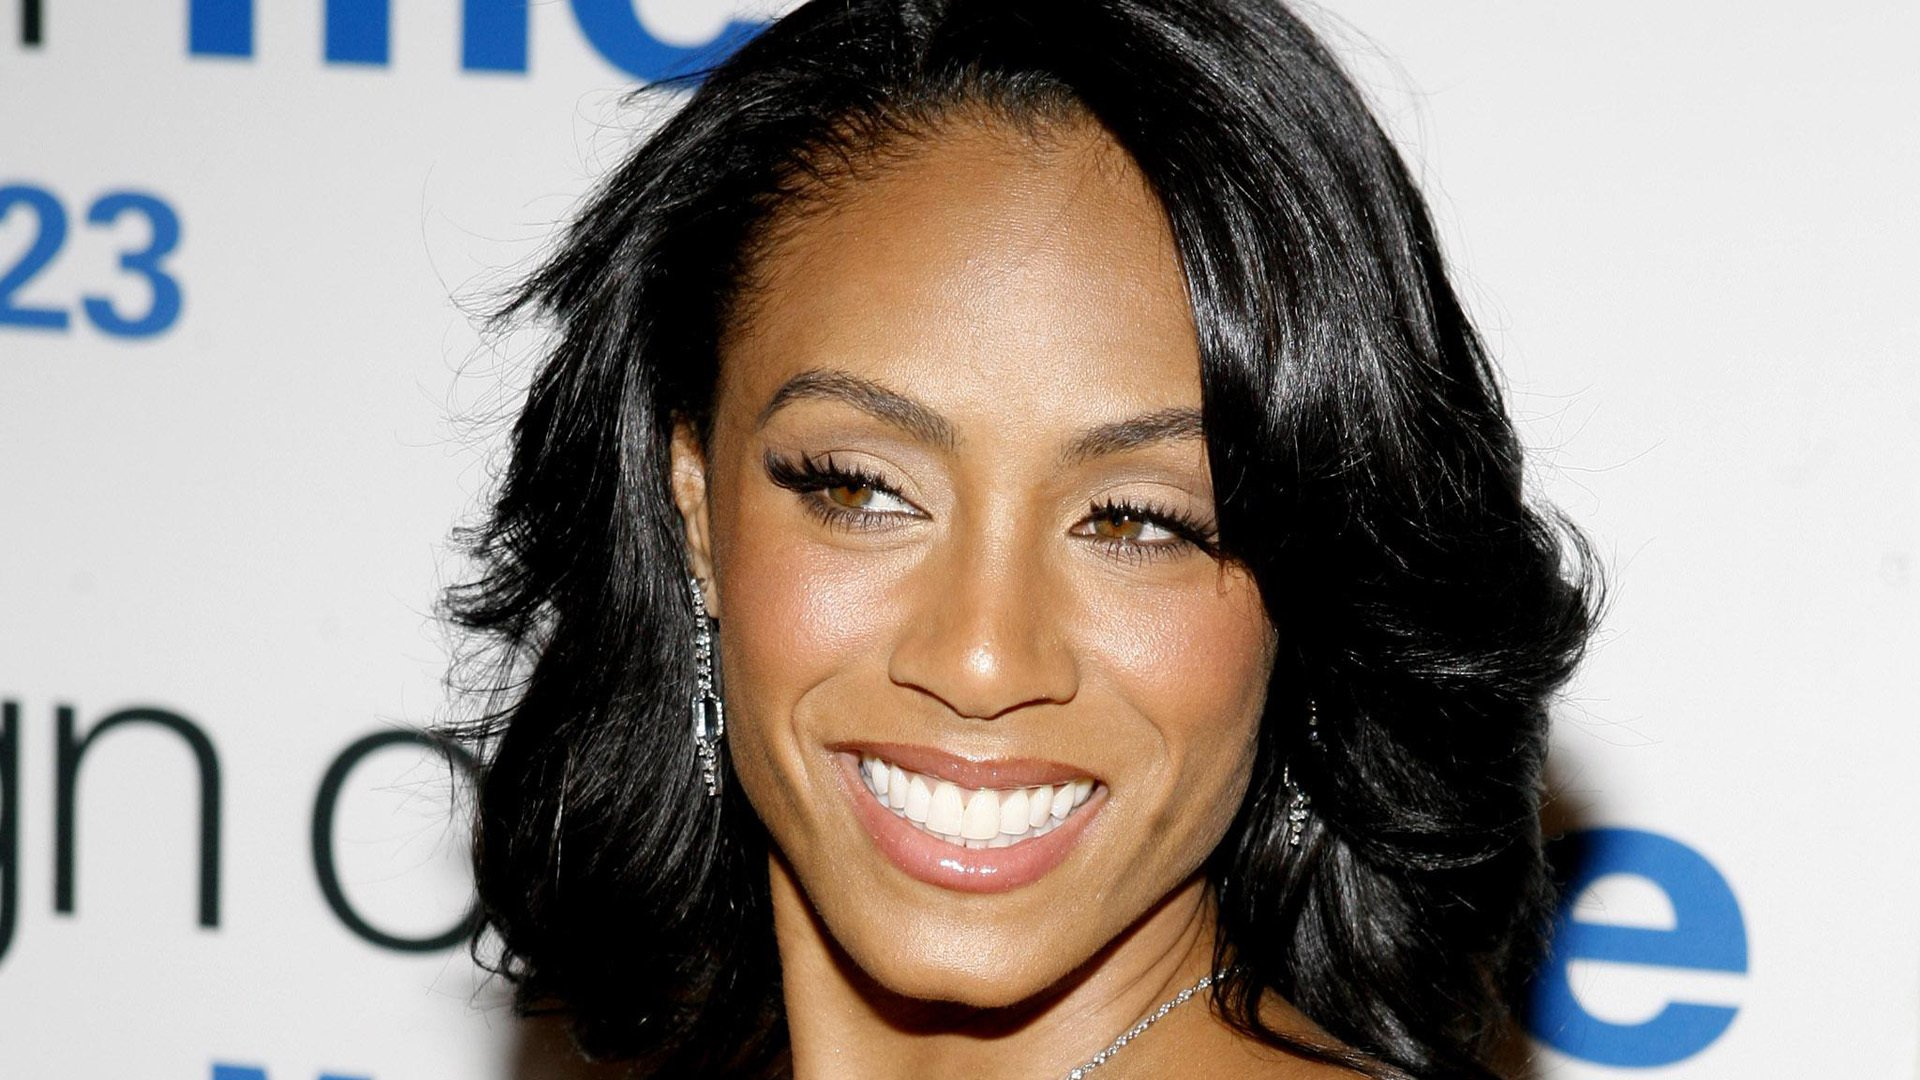 Jada Pinkett Smith Wallpapers Images Photos Pictures 1920x1080